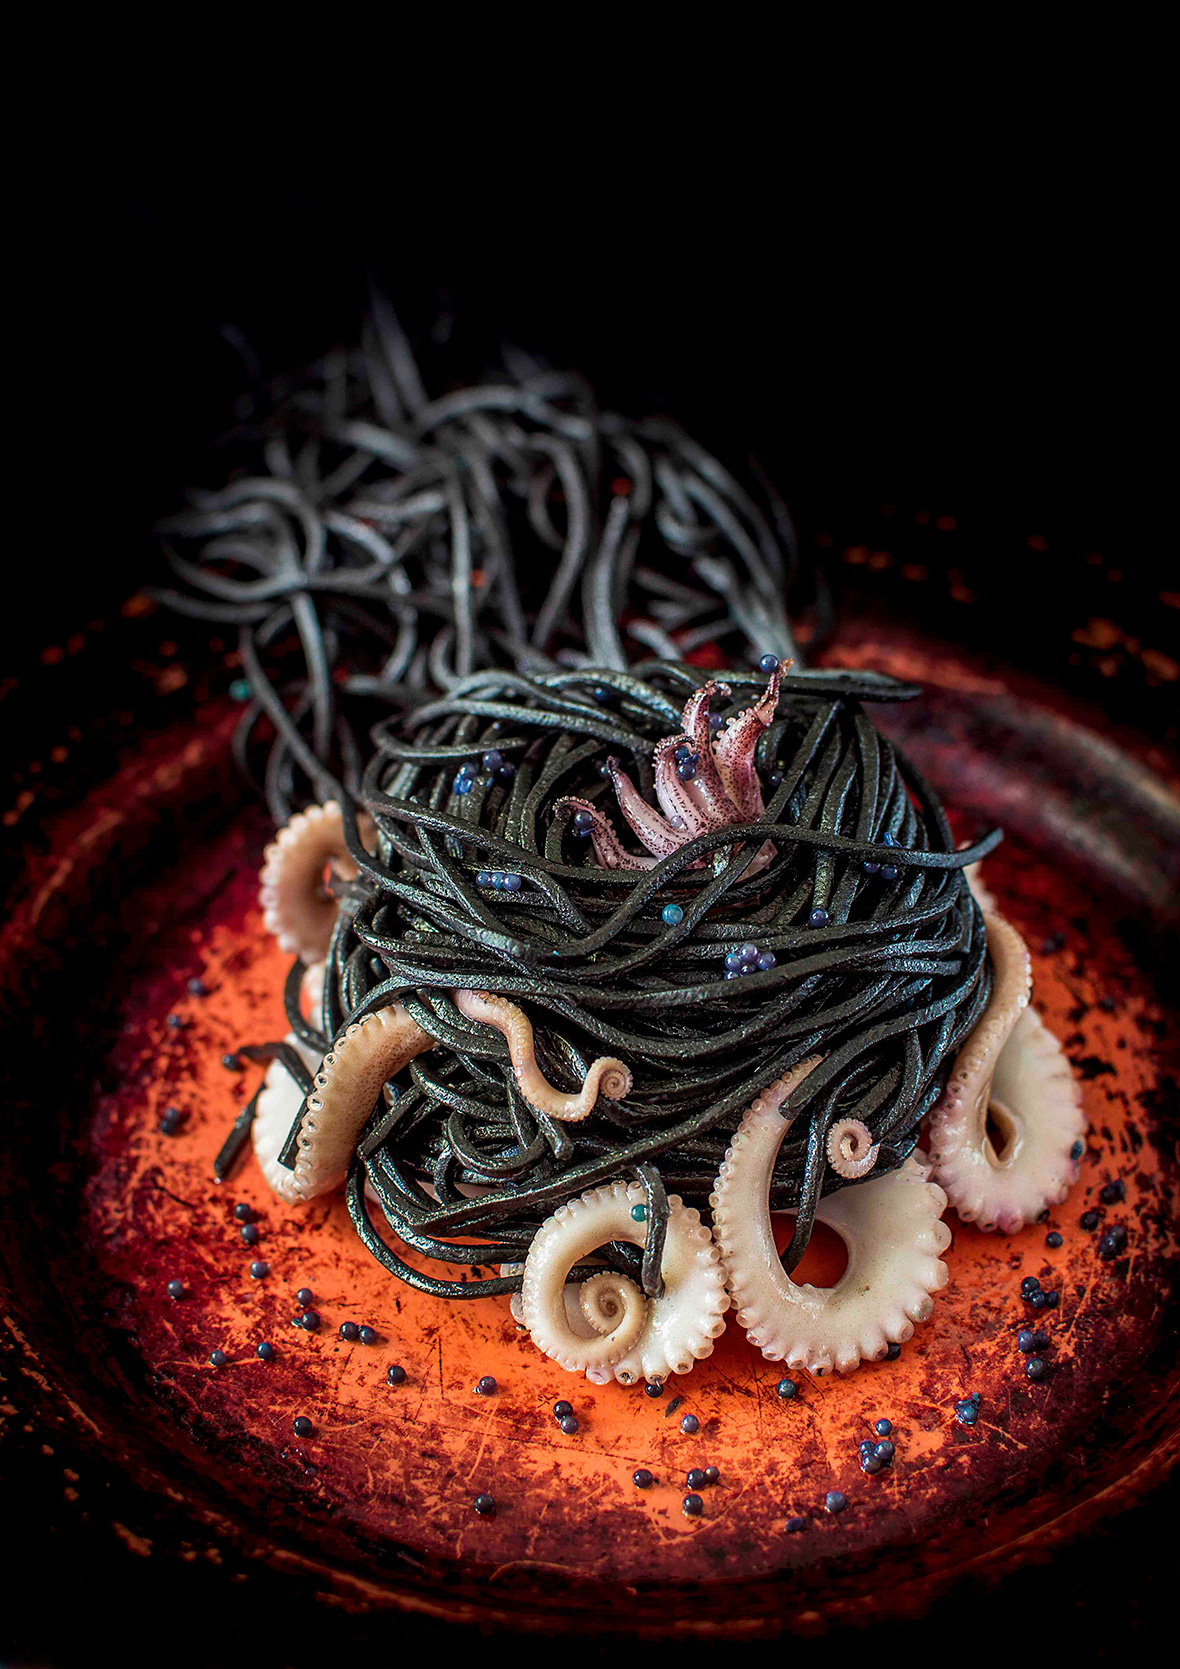 Food Photographer of the Year 2016